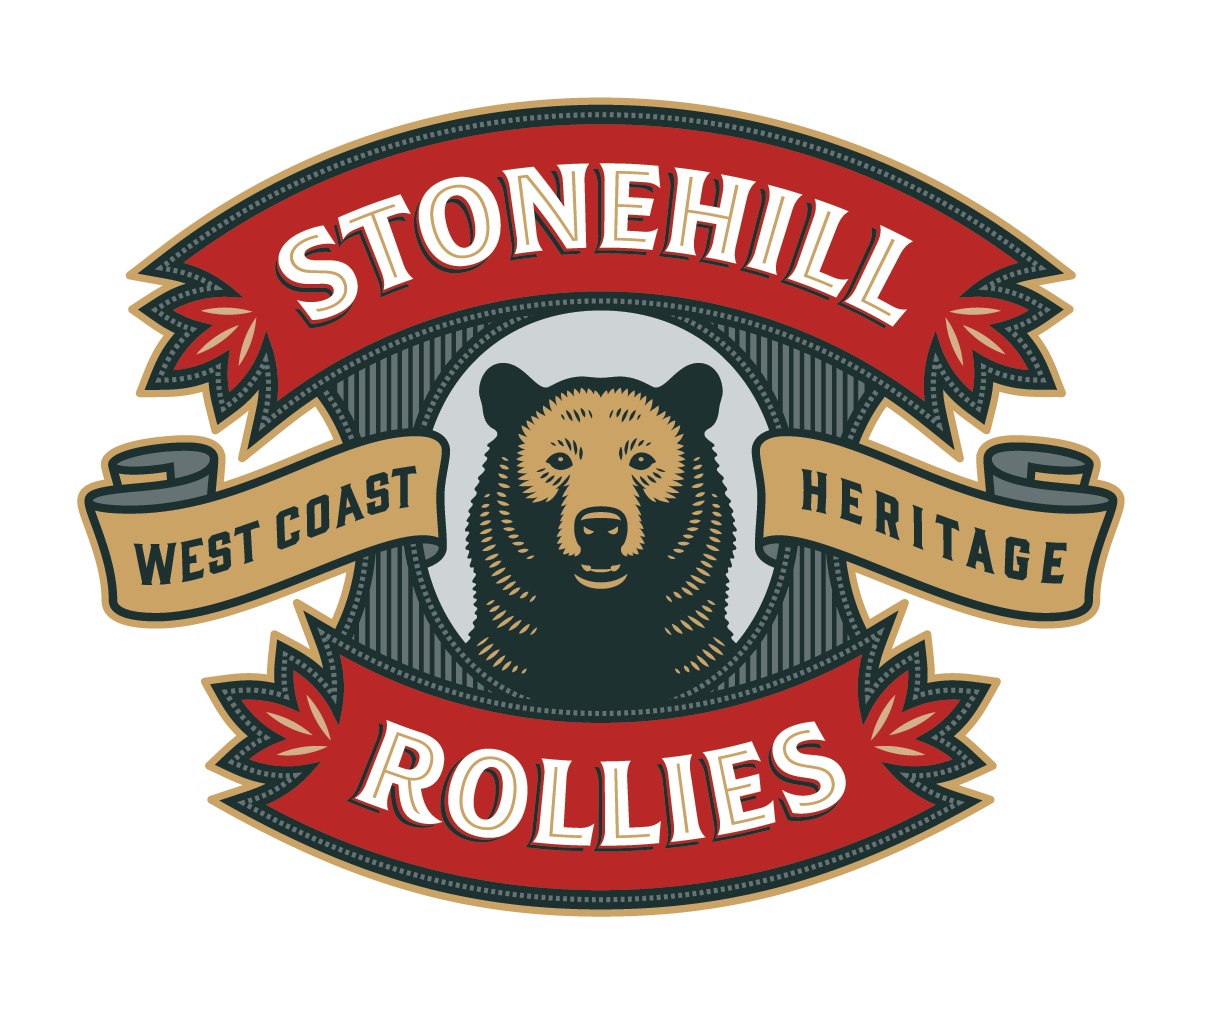 stonehill rollies new color logos-01